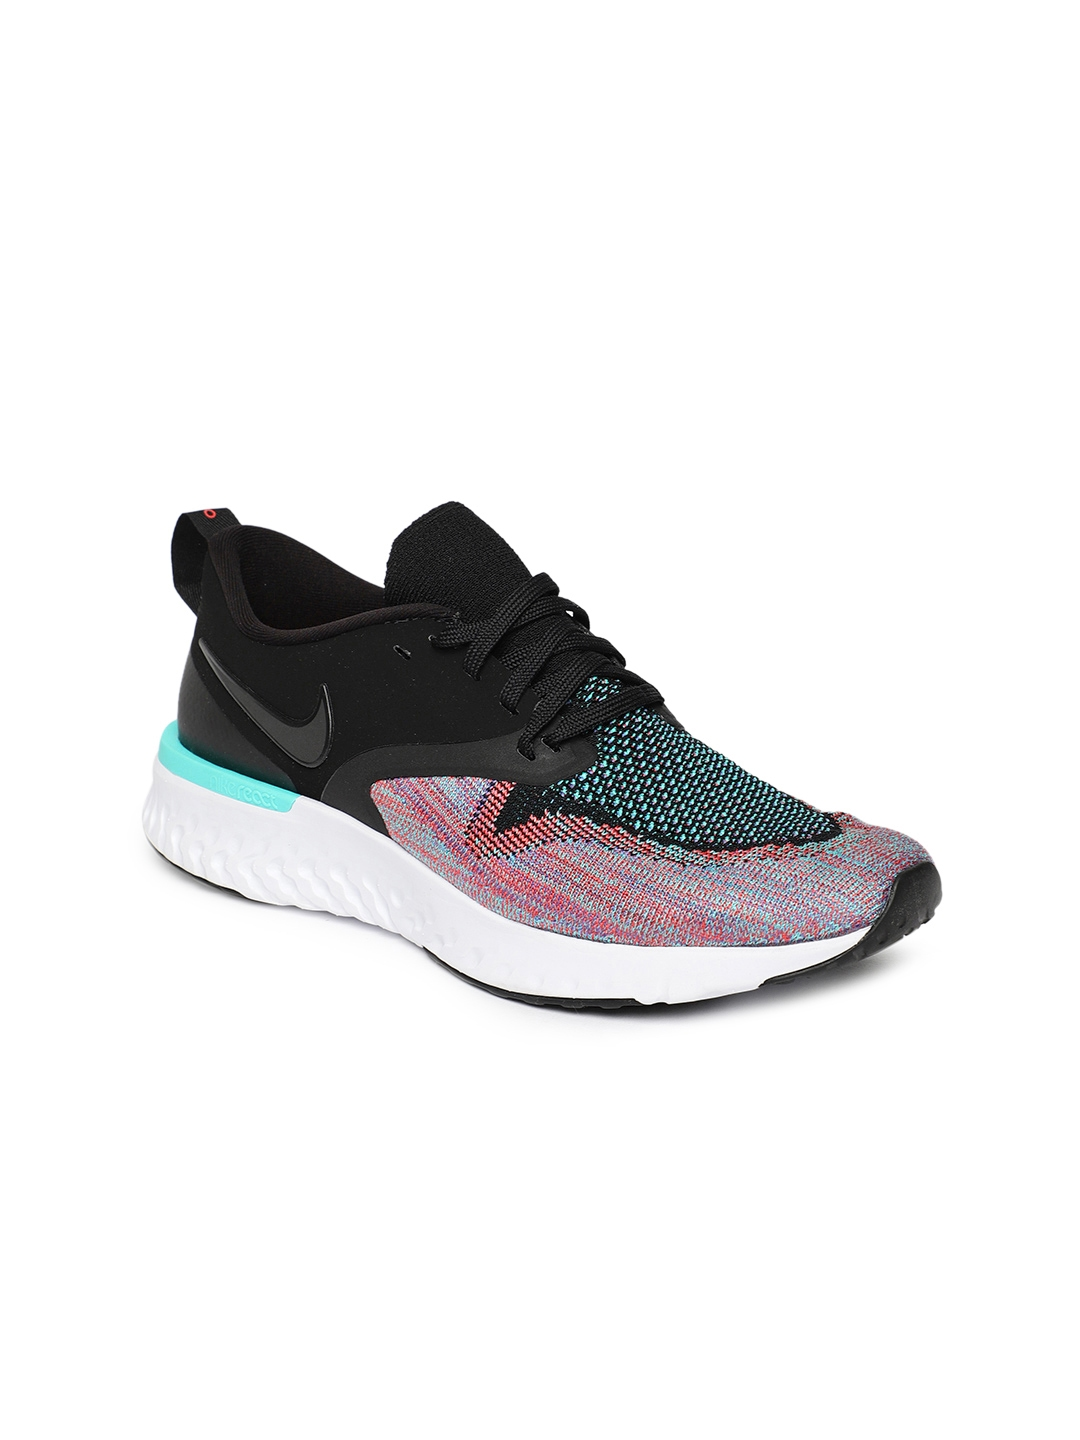 d59a2975a48de Buy Nike Black And Pink Women Odyssey React Flyknit 2 Running Shoes ...